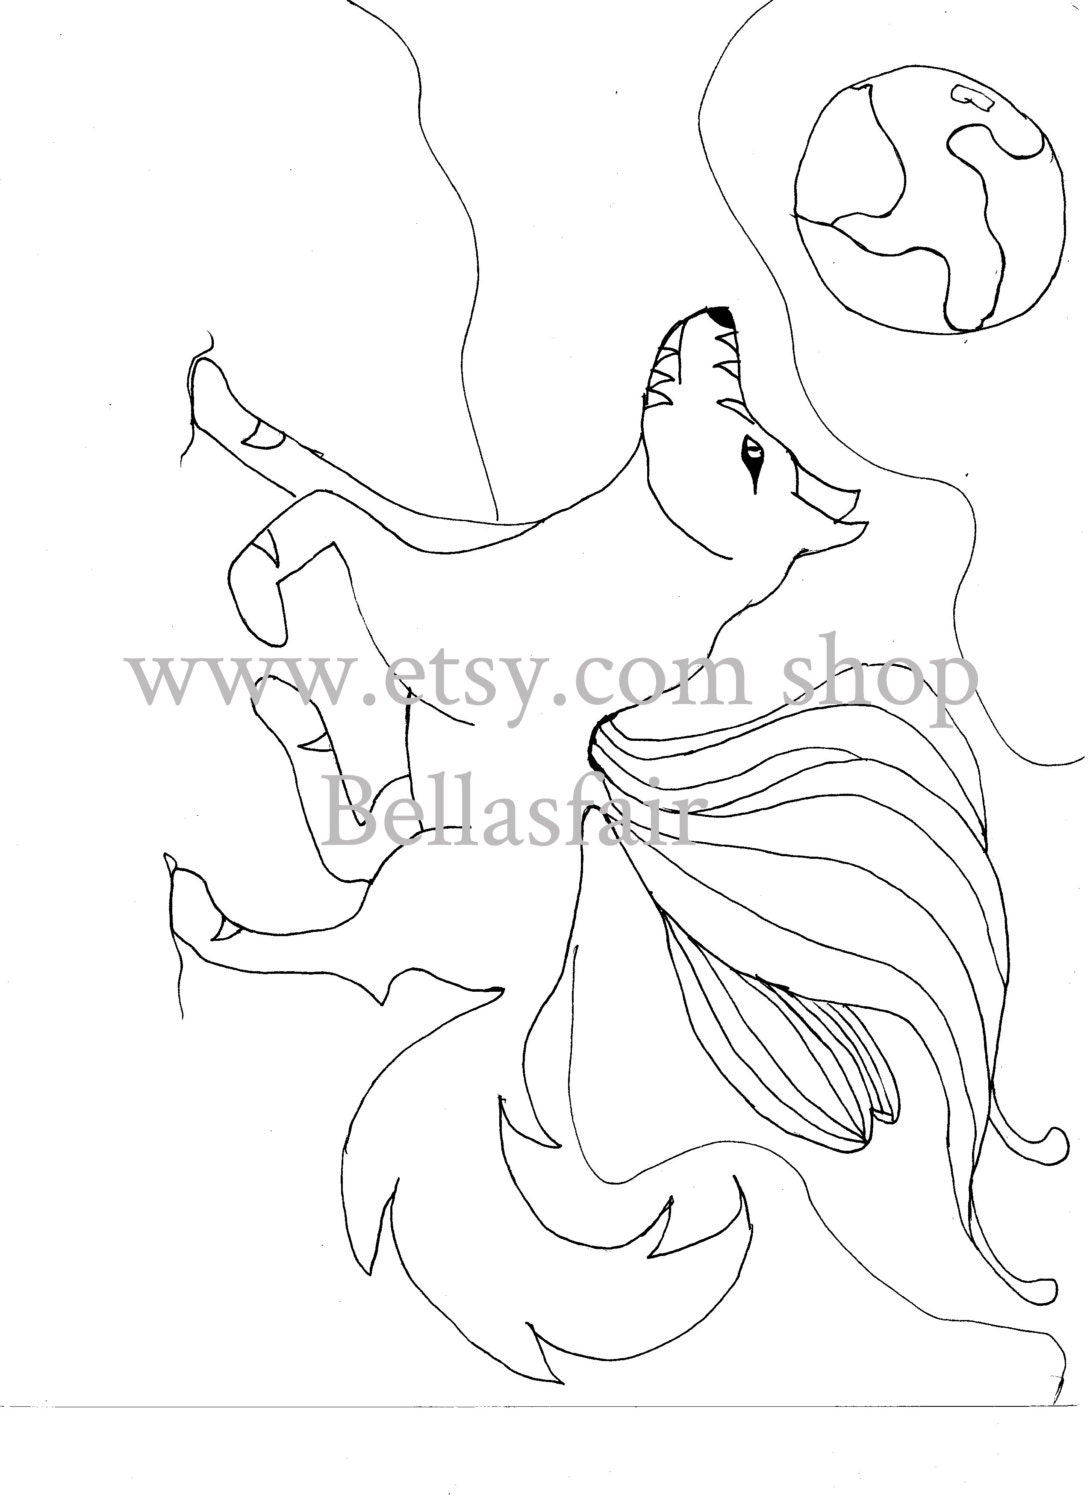 Hand Drawn Mythical winged Wolf coloring coloring page